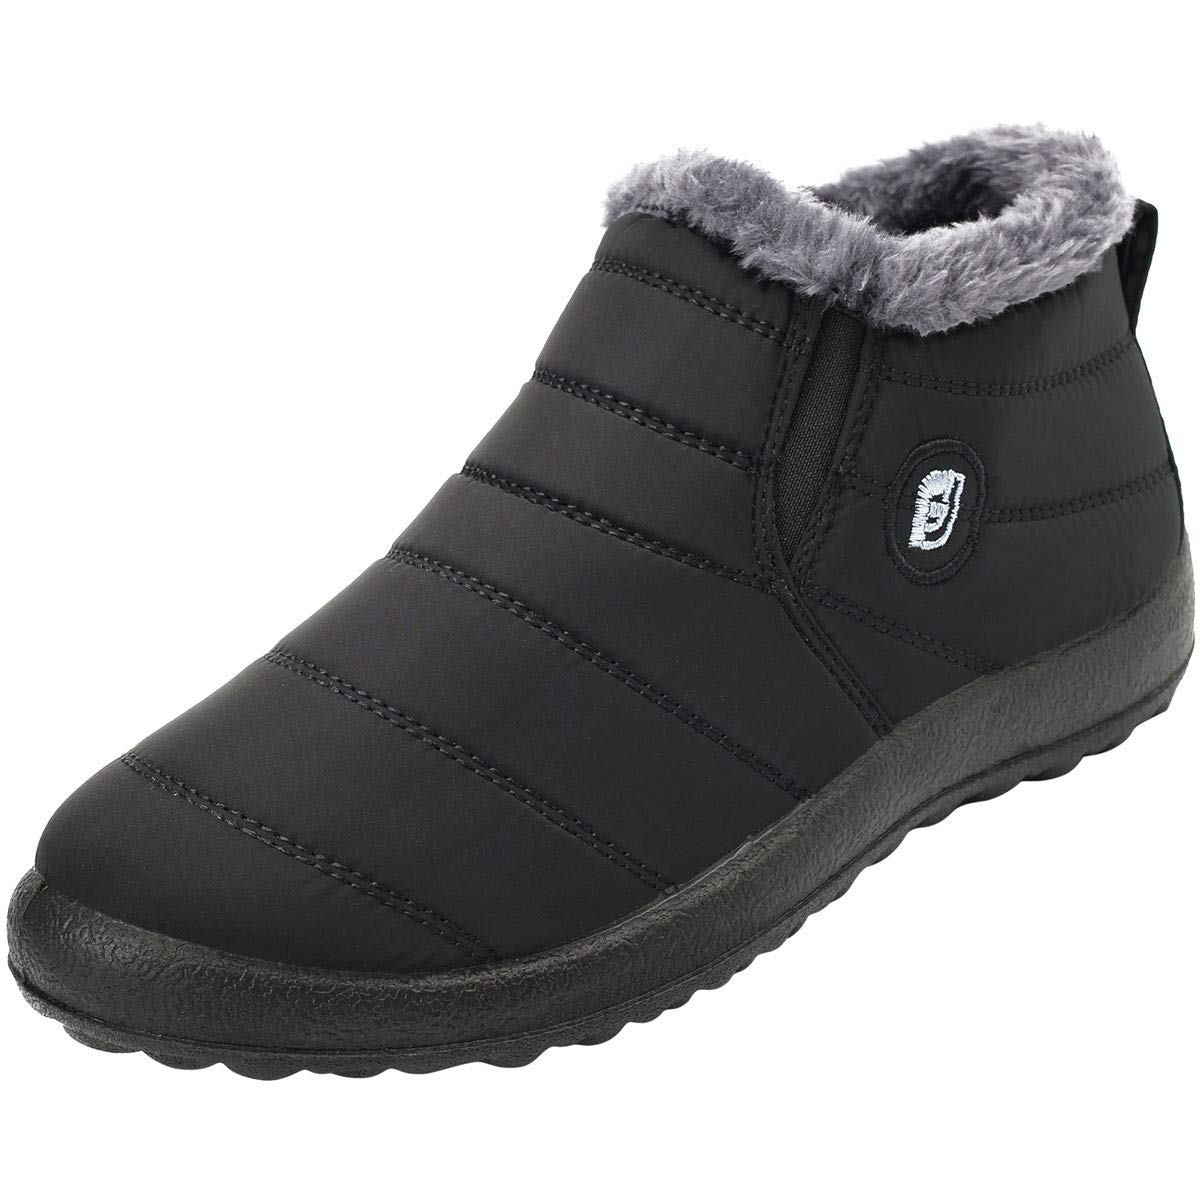 JOINFREE Womens Waterproof Winter Shoes Fur Lining Snow Boots for Women Black 8.5 M by JOINFREE